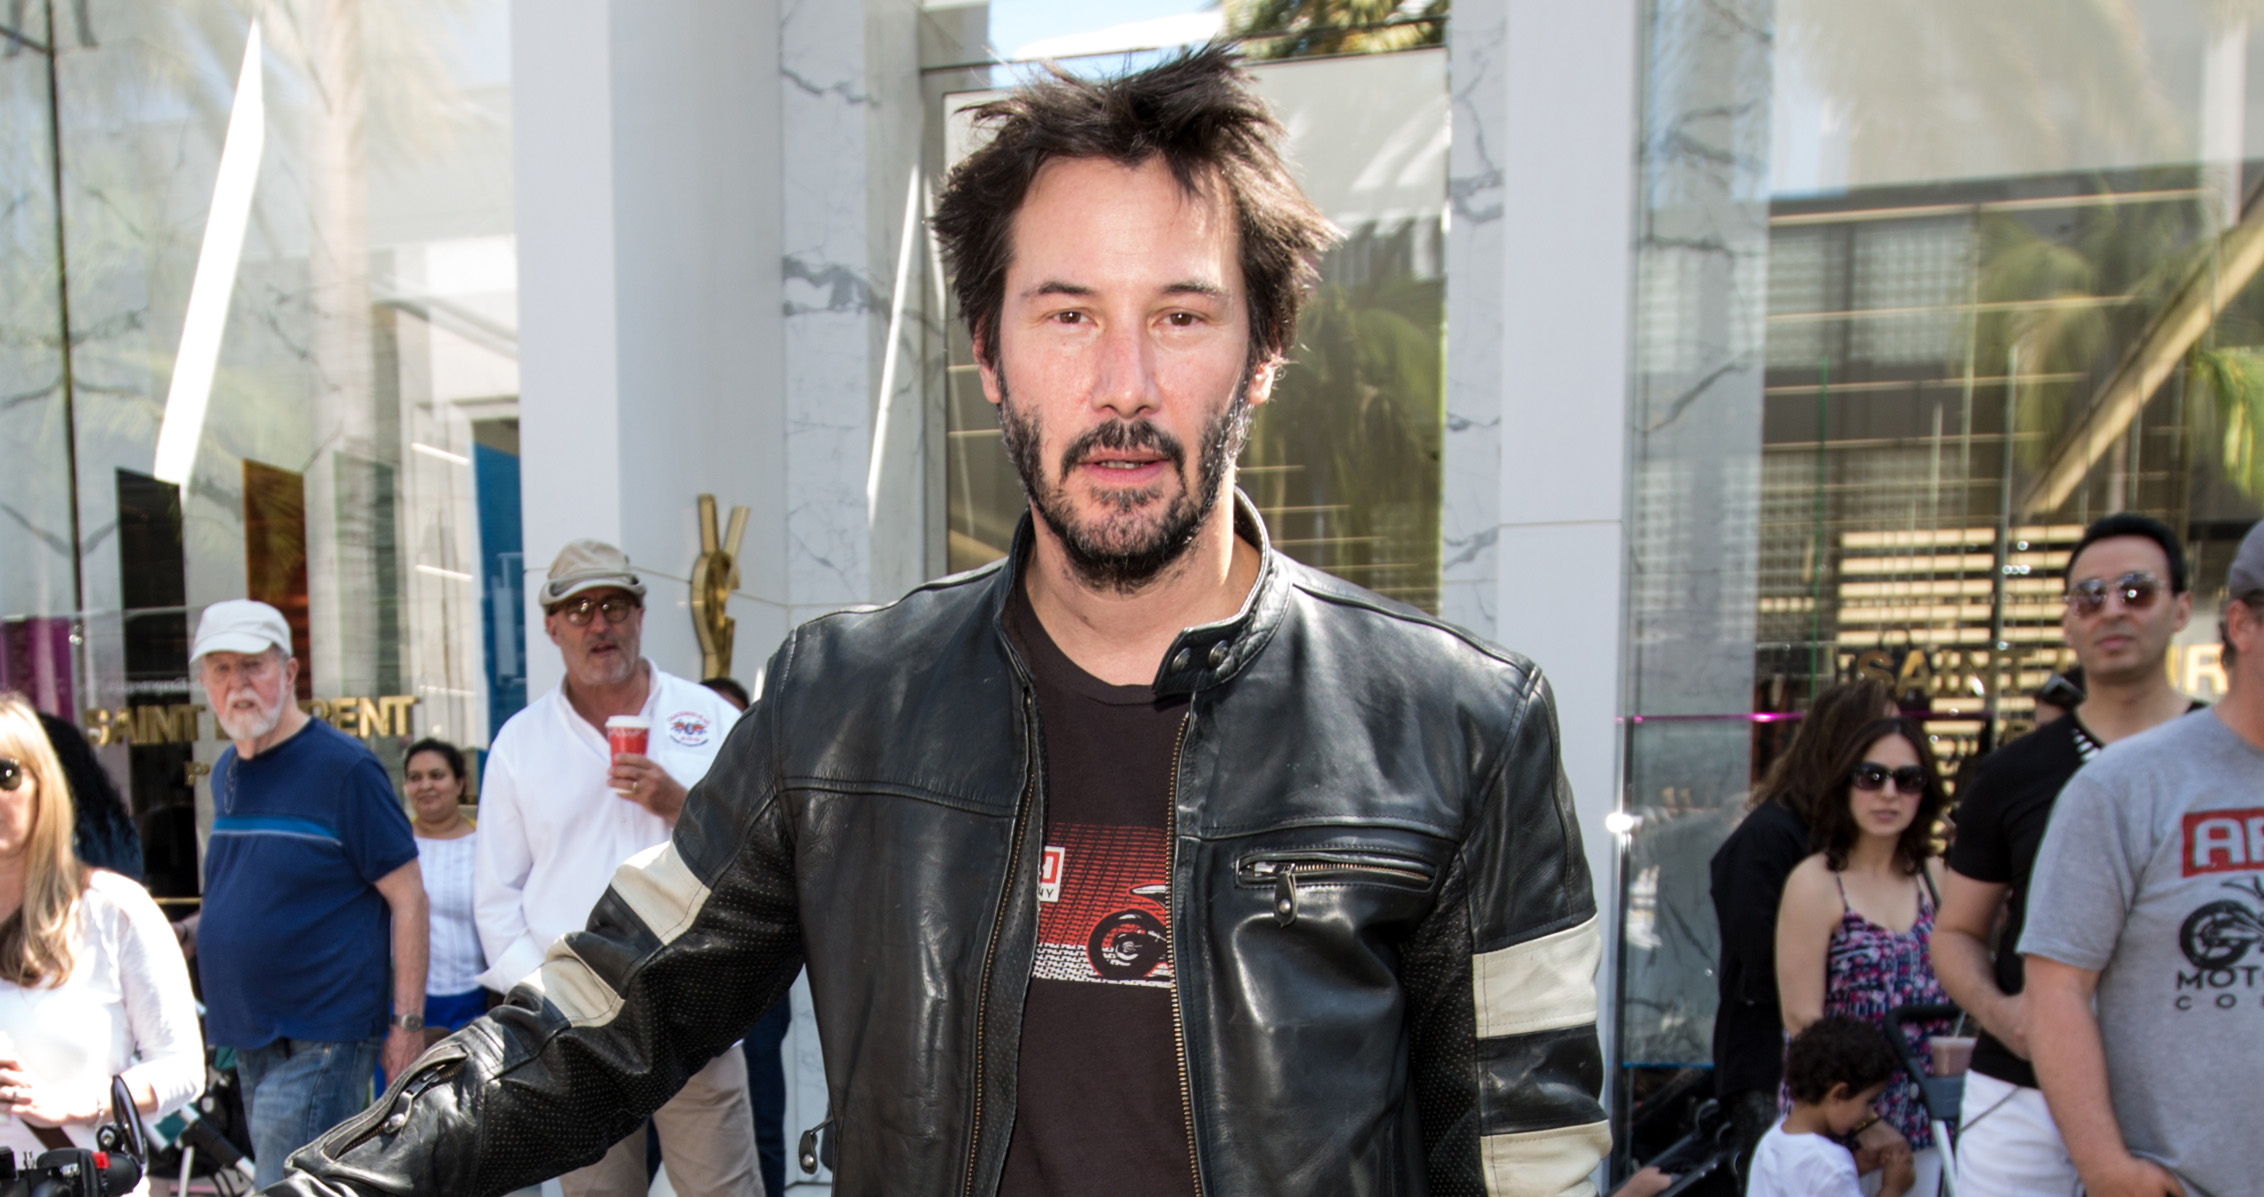 Keanu Reeves at the Rodeo Drive Concours d'Elegance